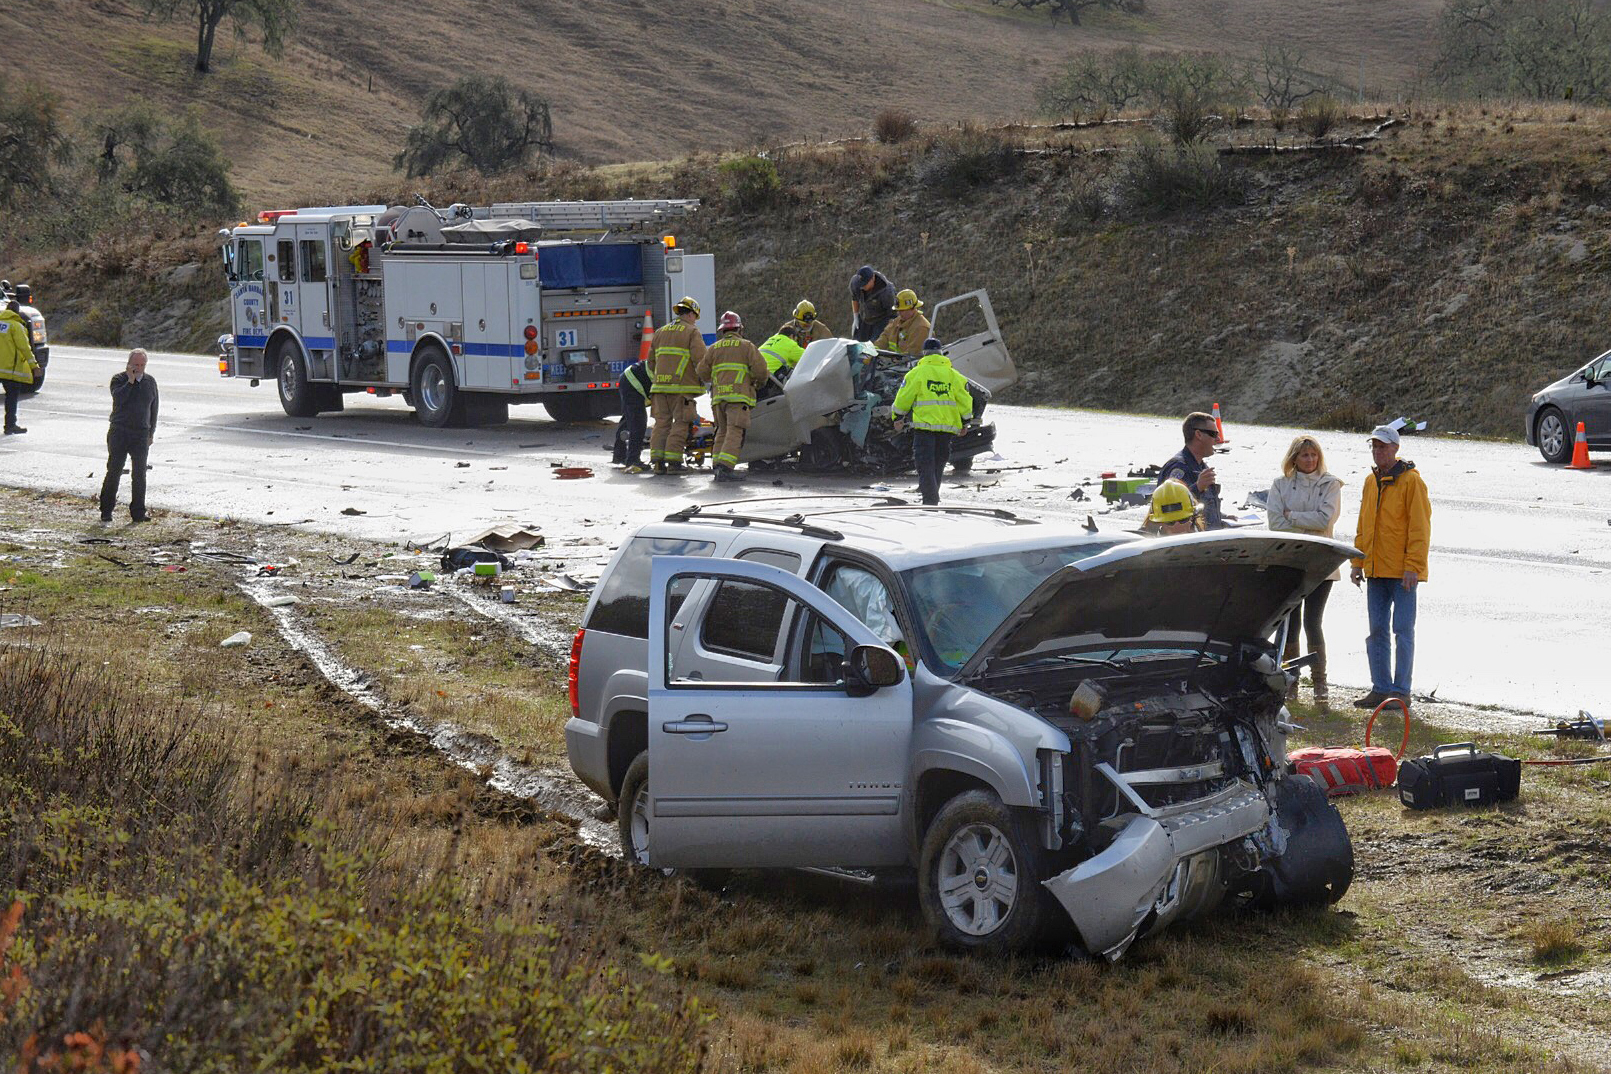 The drivers involved in a Tuesday morning collision both had to be extricated from the wreckage of their vehicles, according to the Santa Barbara County Fire Department.